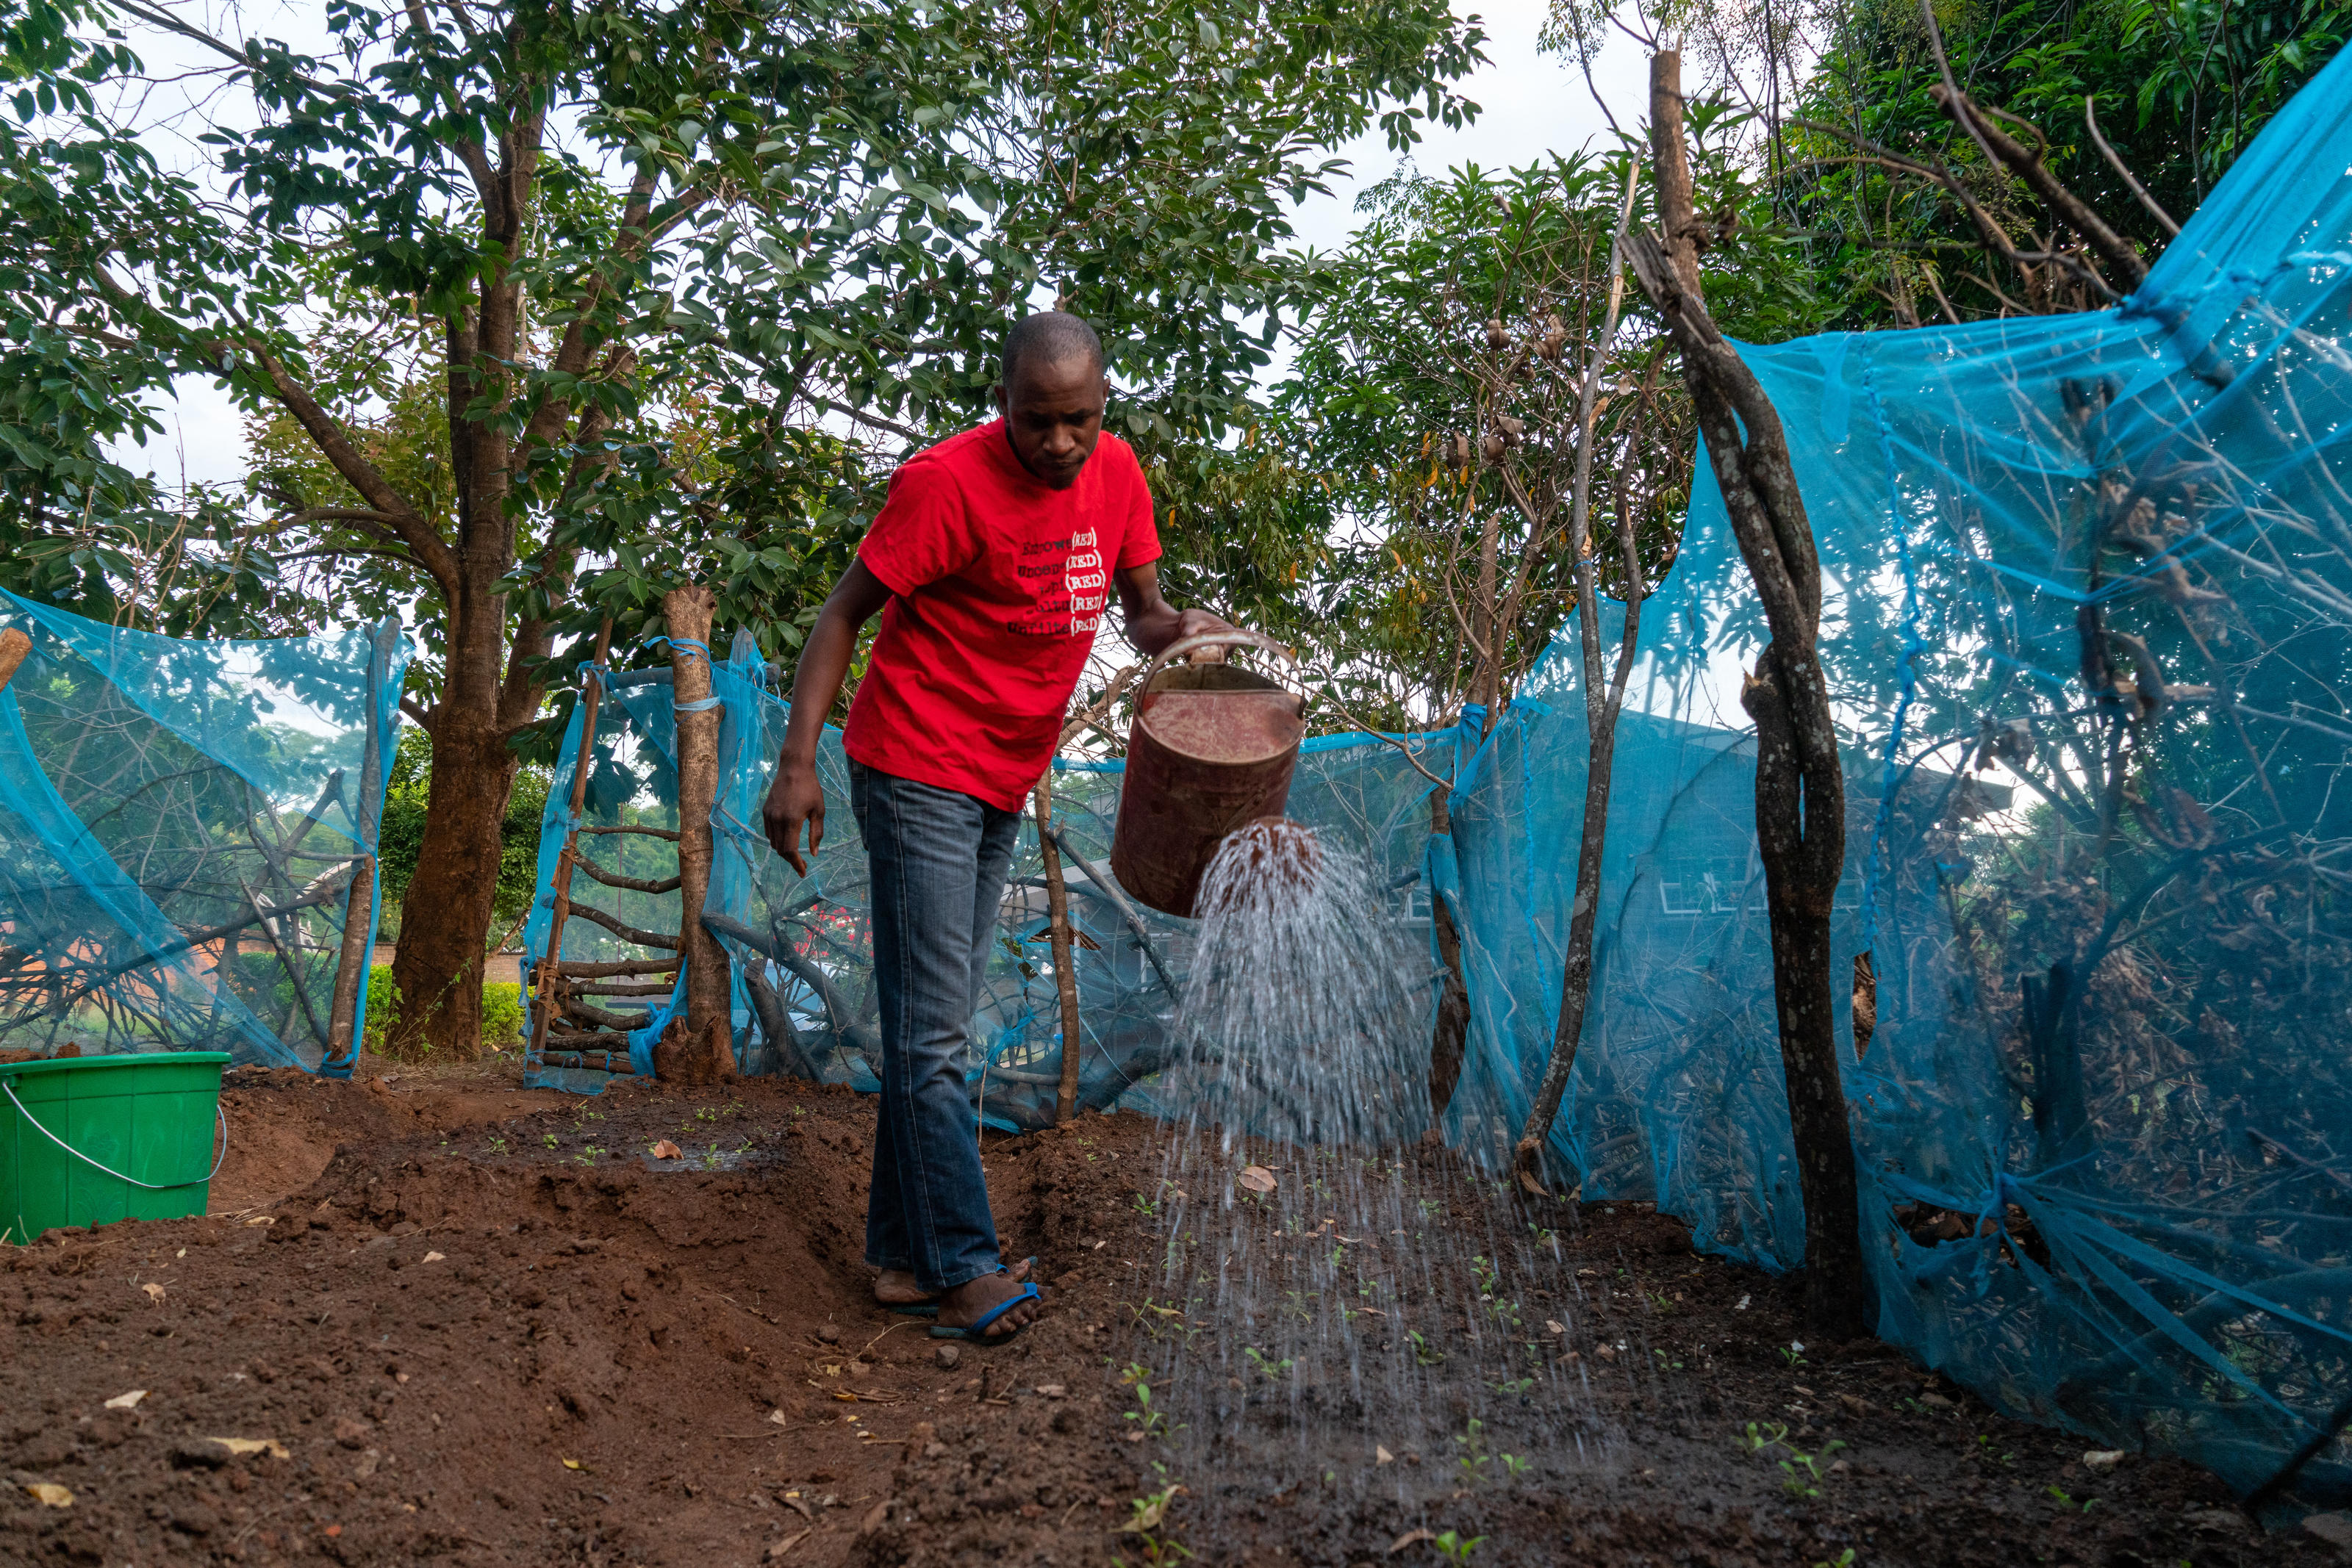 Dennis watering the vegetables inside his vegetable garden at home. Covid-19 response. Lockdown diaries – Dennis Lupenga. May 2020